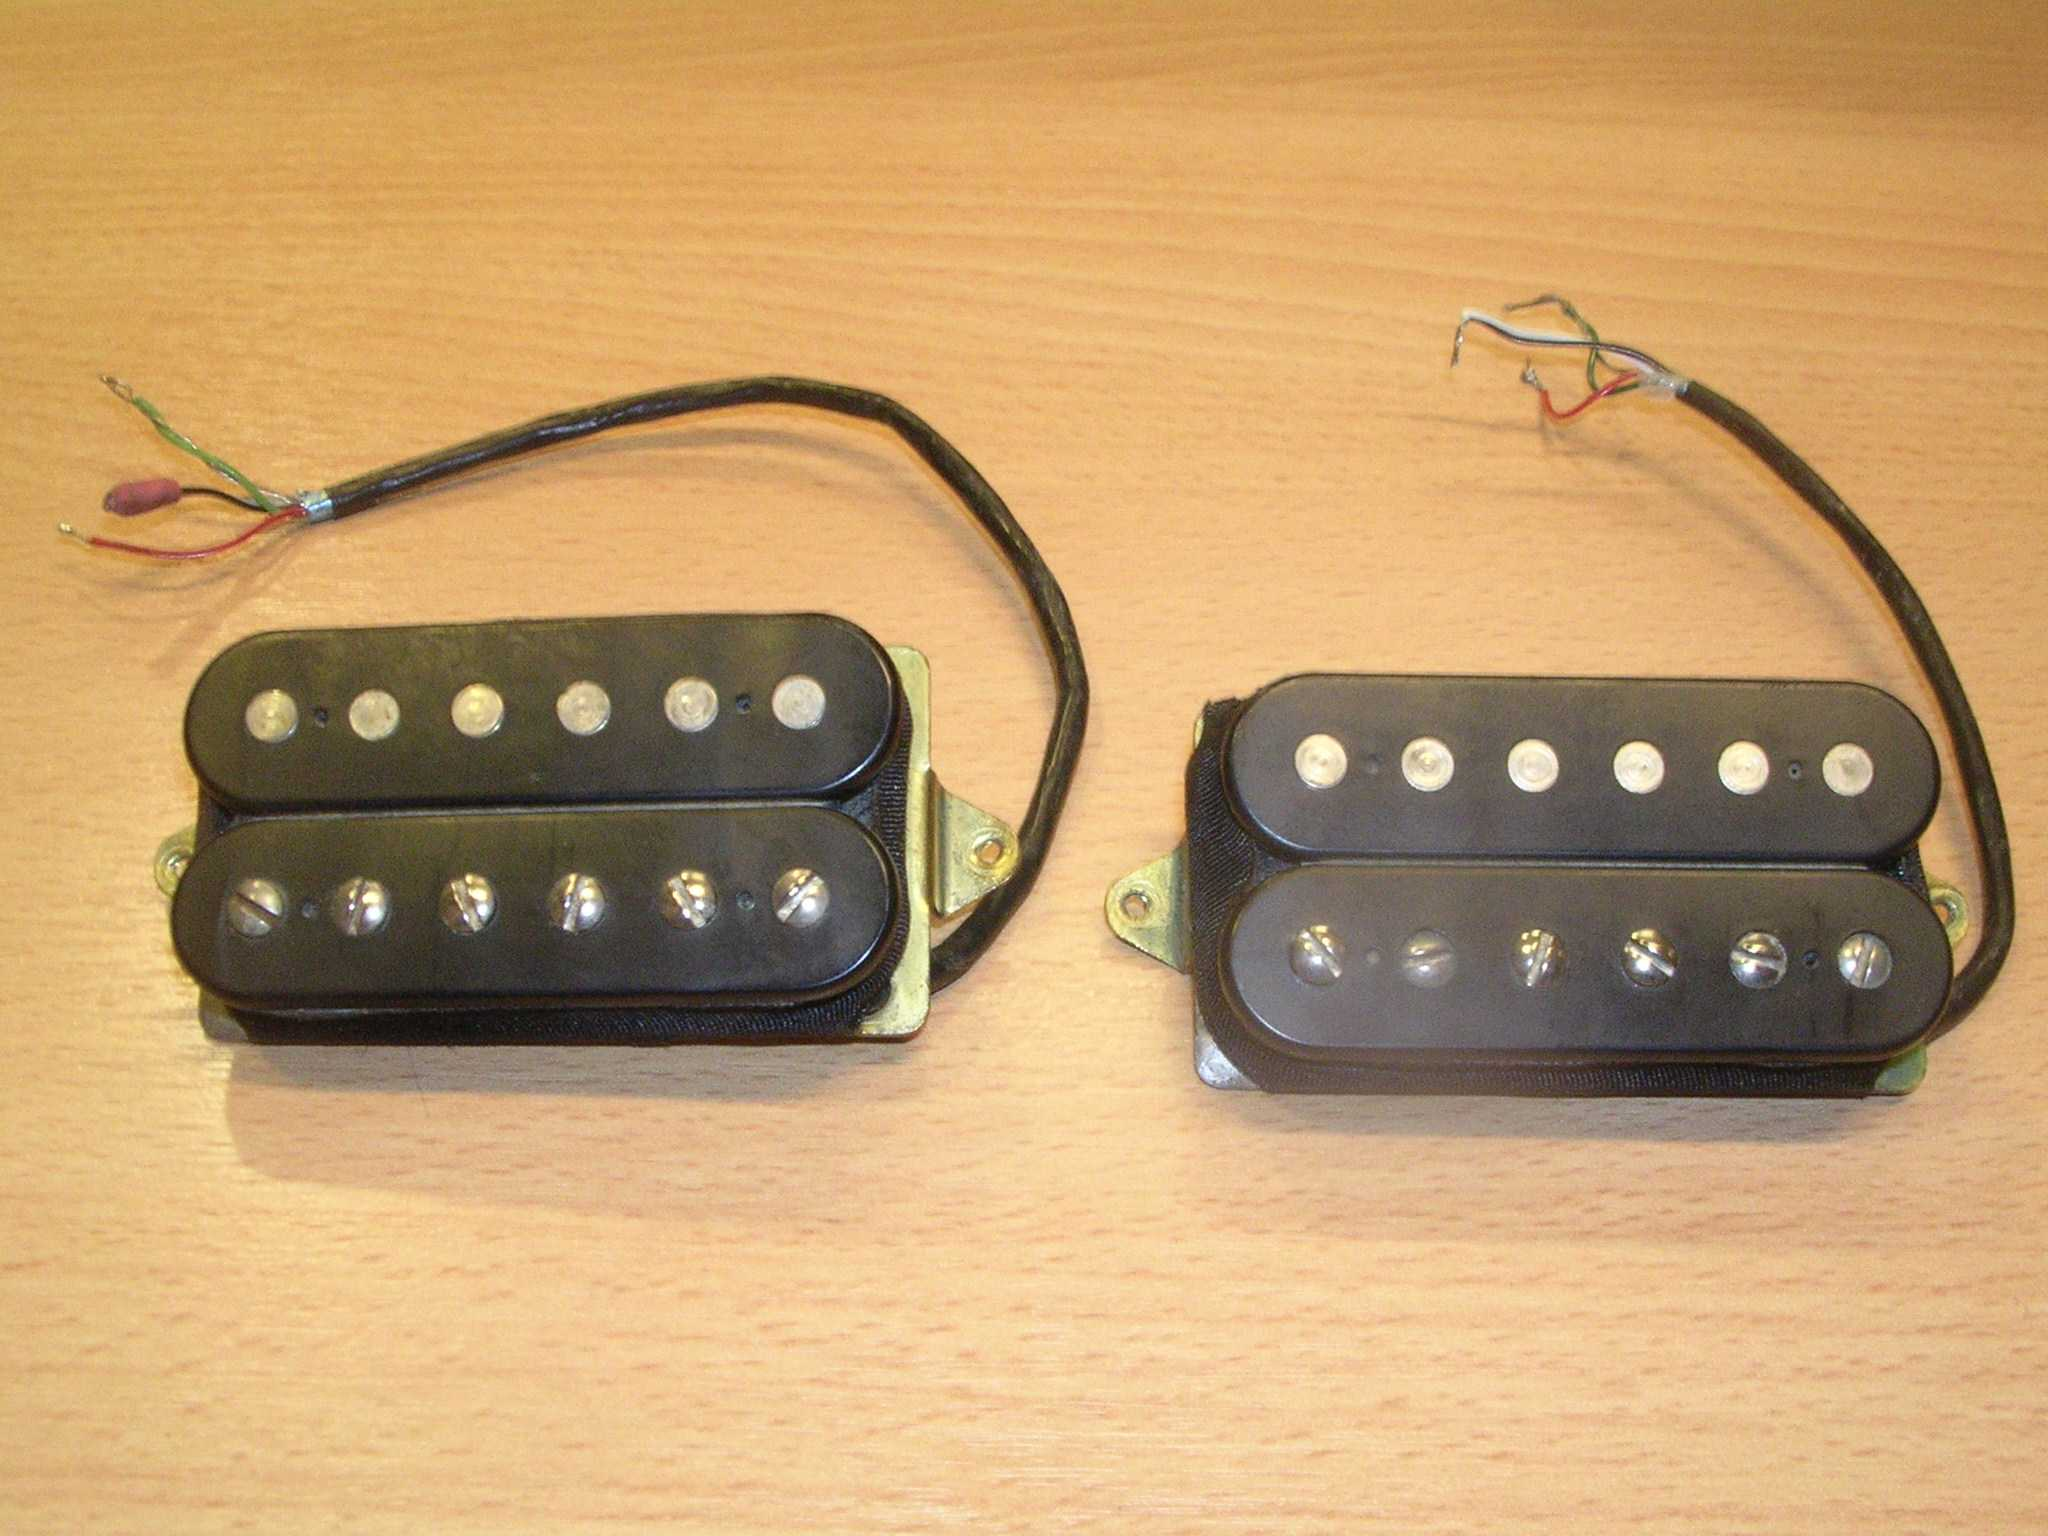 Great Two Humbuckers 5 Way Switch Huge Hh 5 Way Switch Wiring Rectangular Gretsch Wiring Harness Solar Panel Diagram Youthful Solar Panel Wiring Guide BrightSolar Panel Diagrams DiMarzio DP190 Air Classic Neck Image (#144130)   Audiofanzine